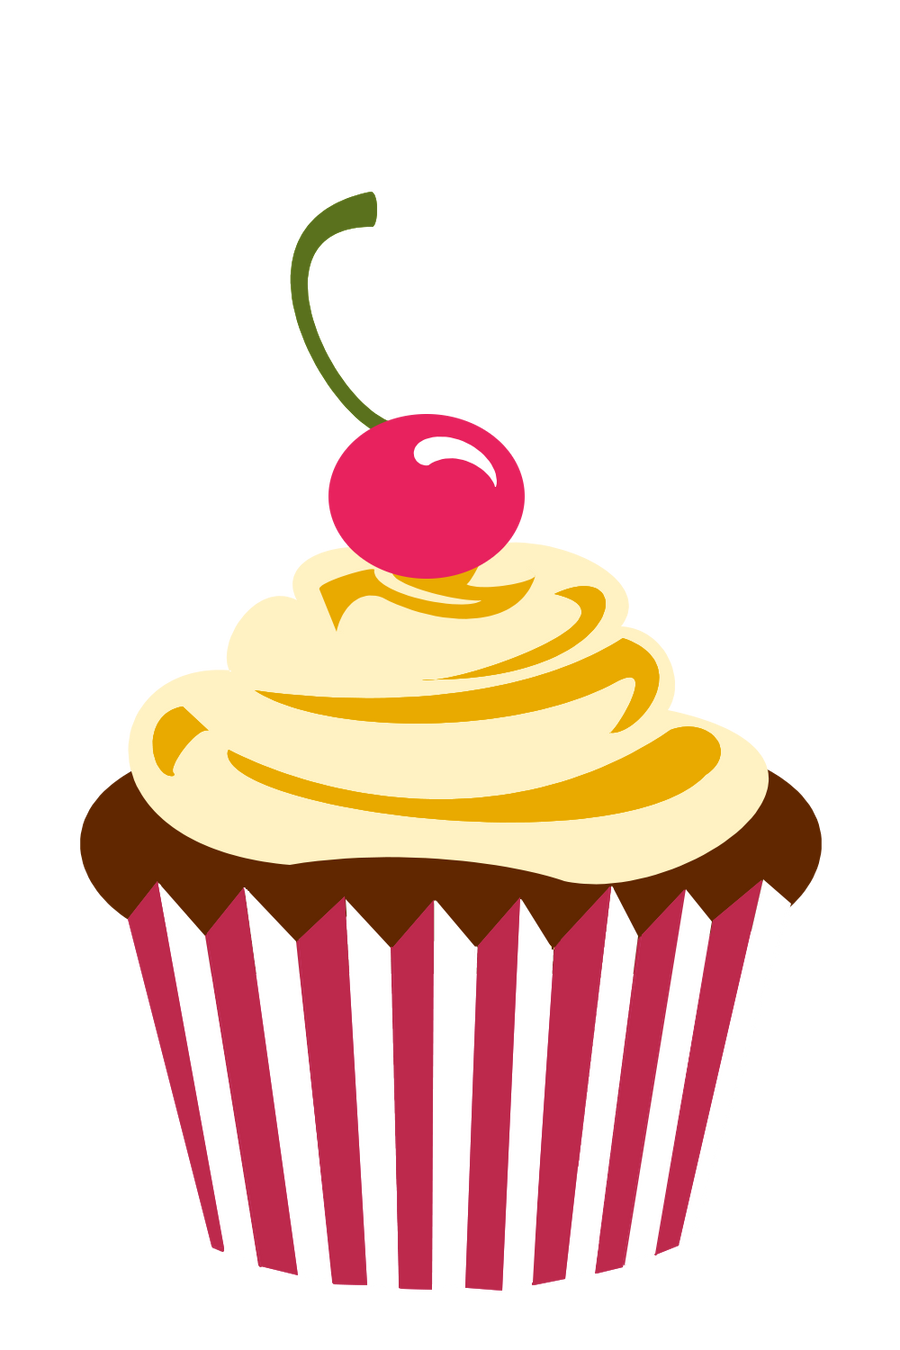 Cupcake Logo Png Cherry Chocolate By